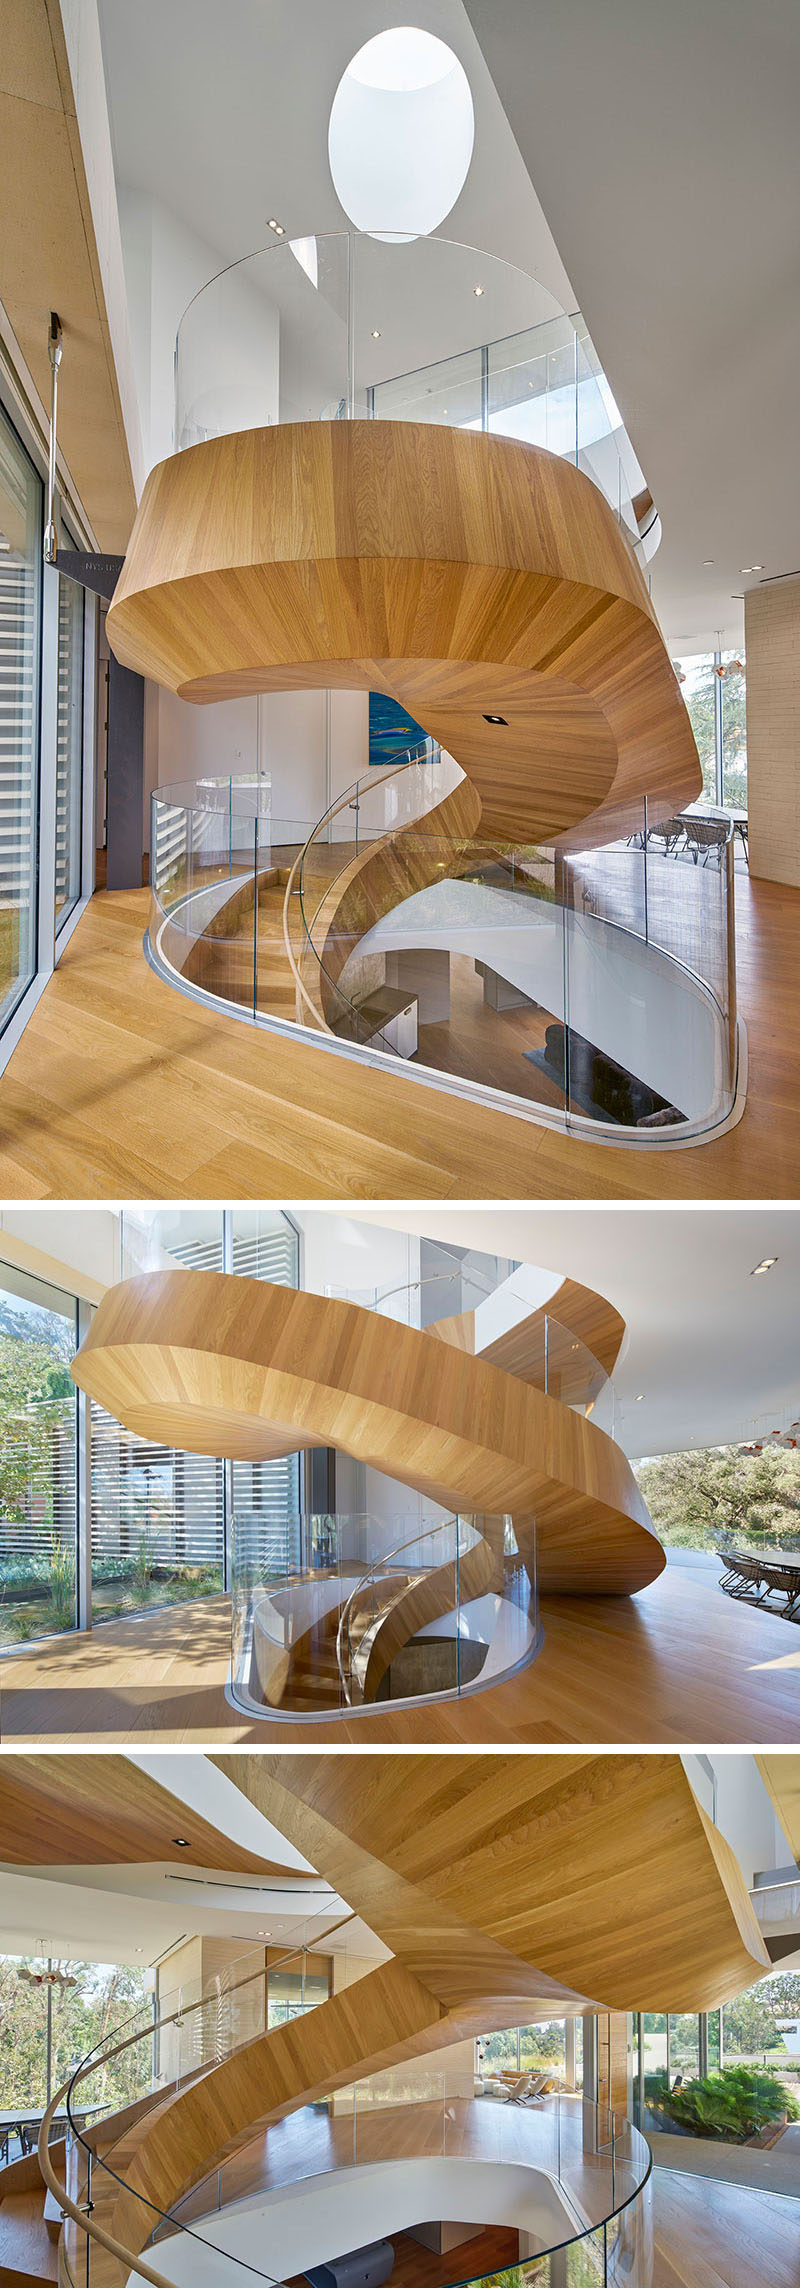 This Large Wood Spiral Staircase Not Only Connects Various Levels Of The  Home But Also Divides The Space And Acts As A Sculptural Installation.